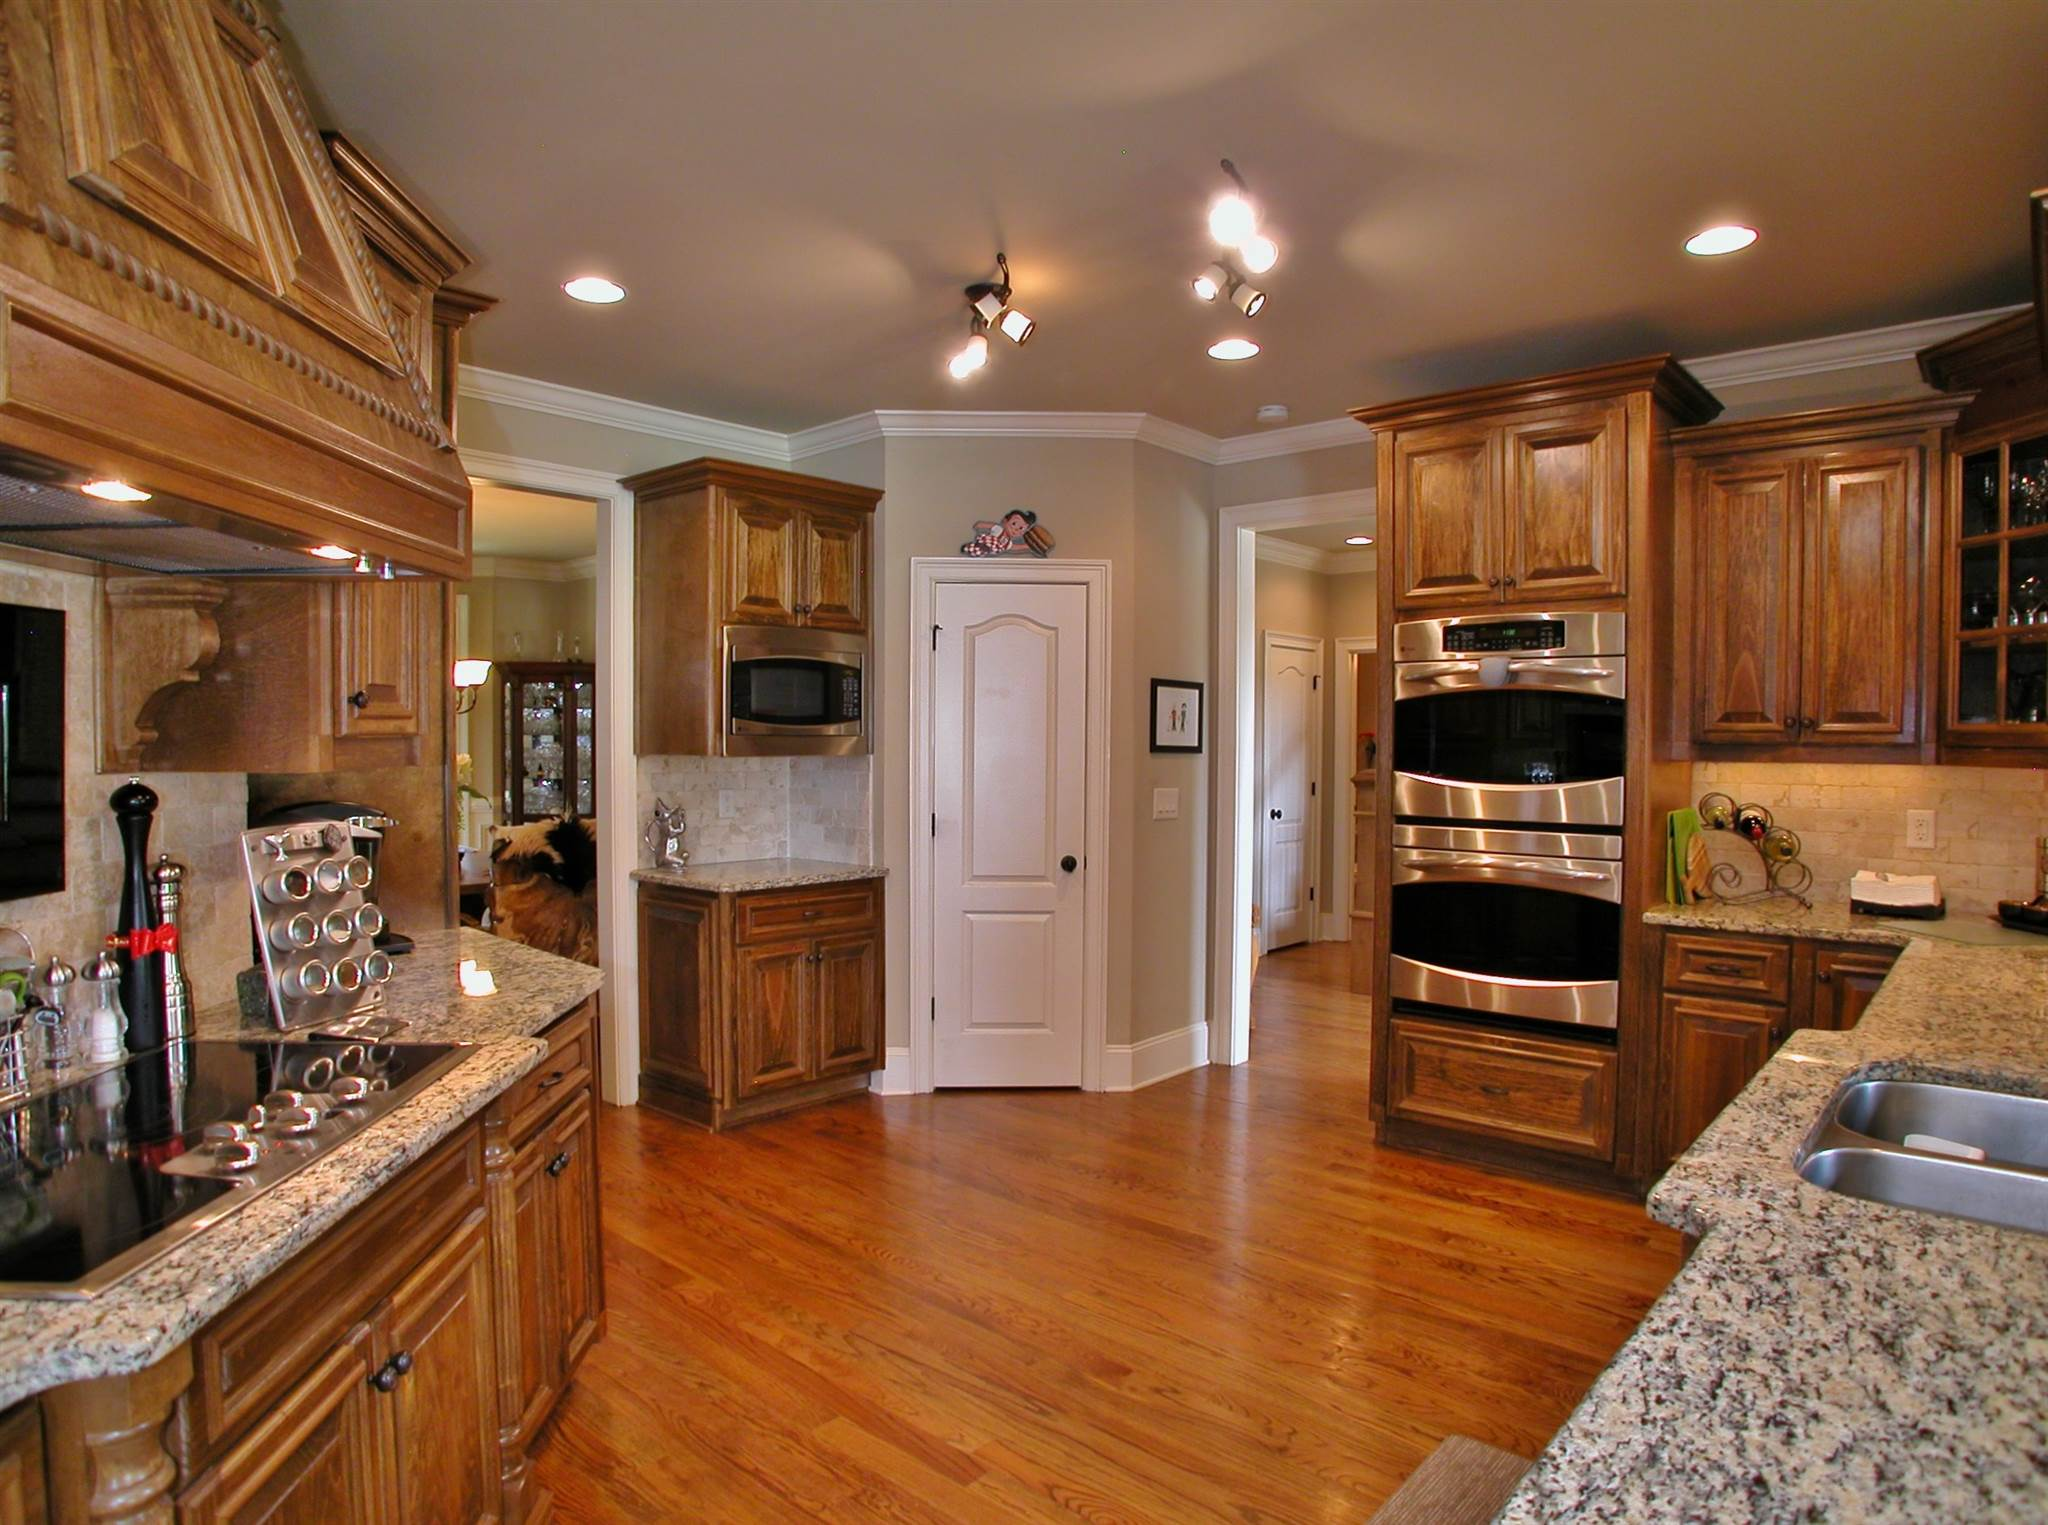 Single Family Detached, Craftsman,Traditional - Gainesville, GA (photo 4)